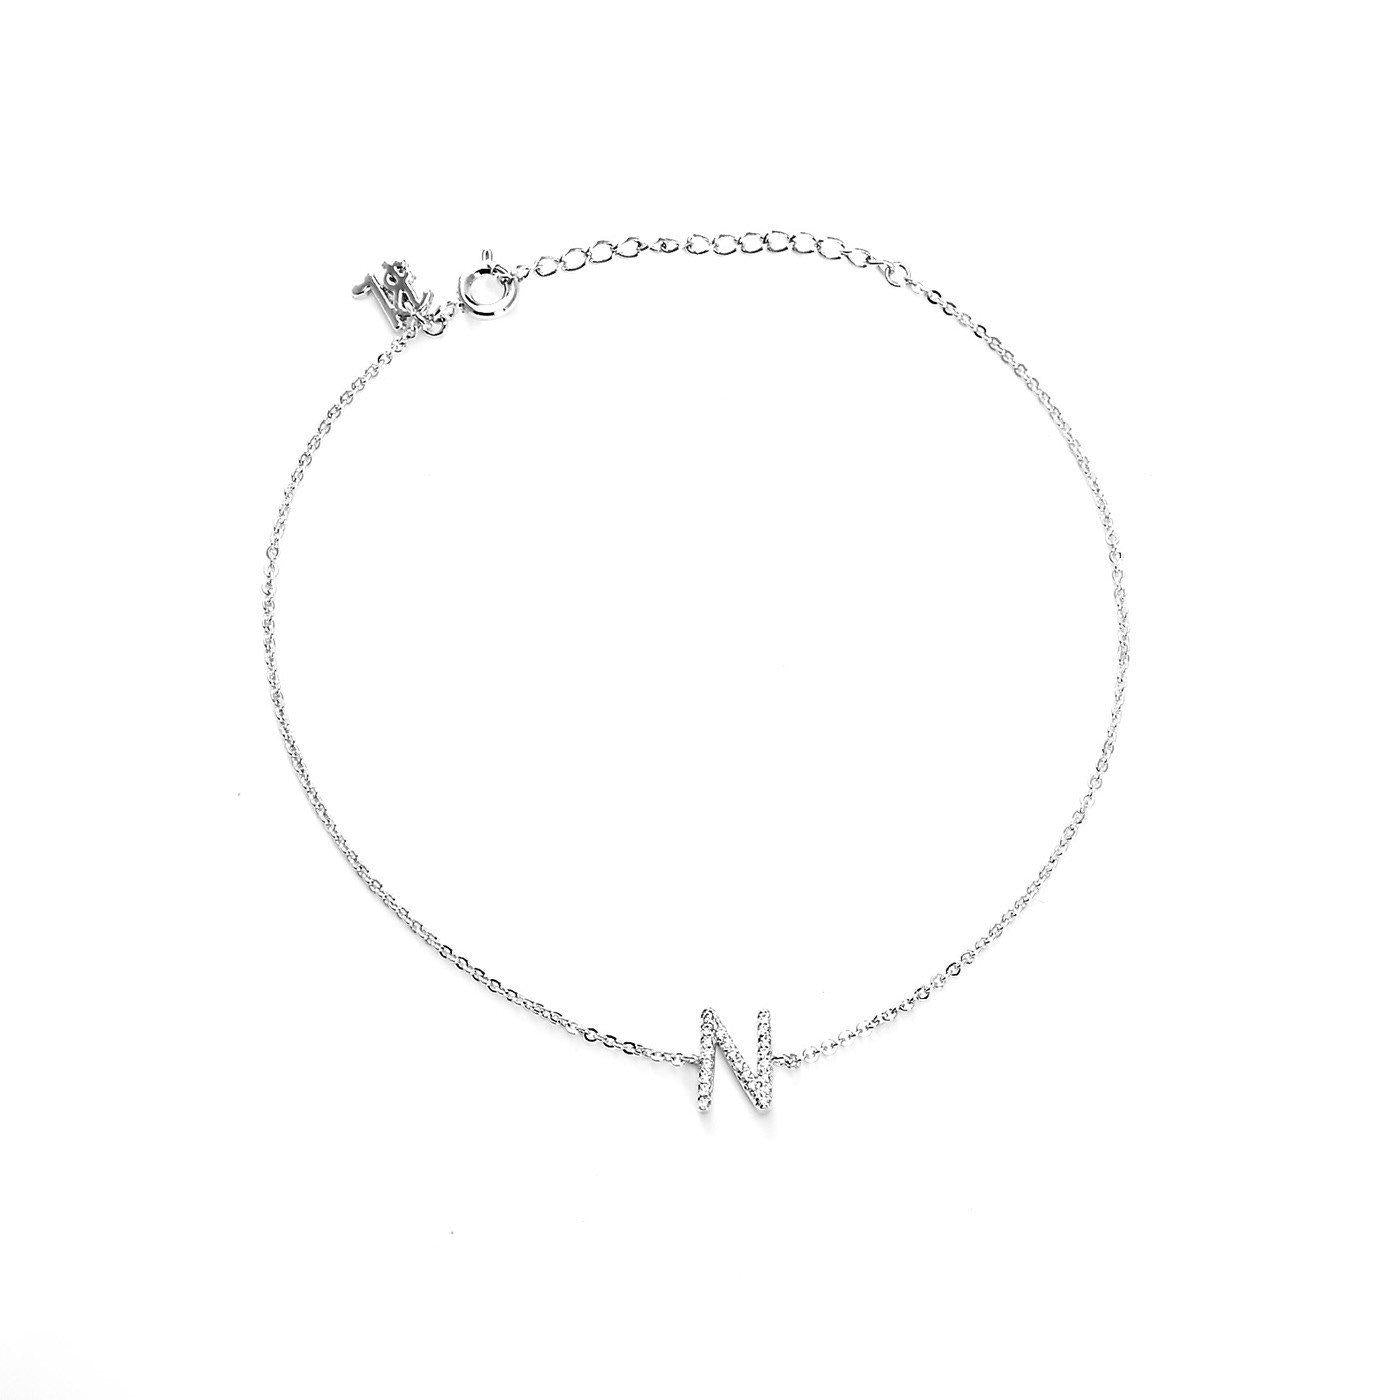 Your Initial N Anklet-Blinglane